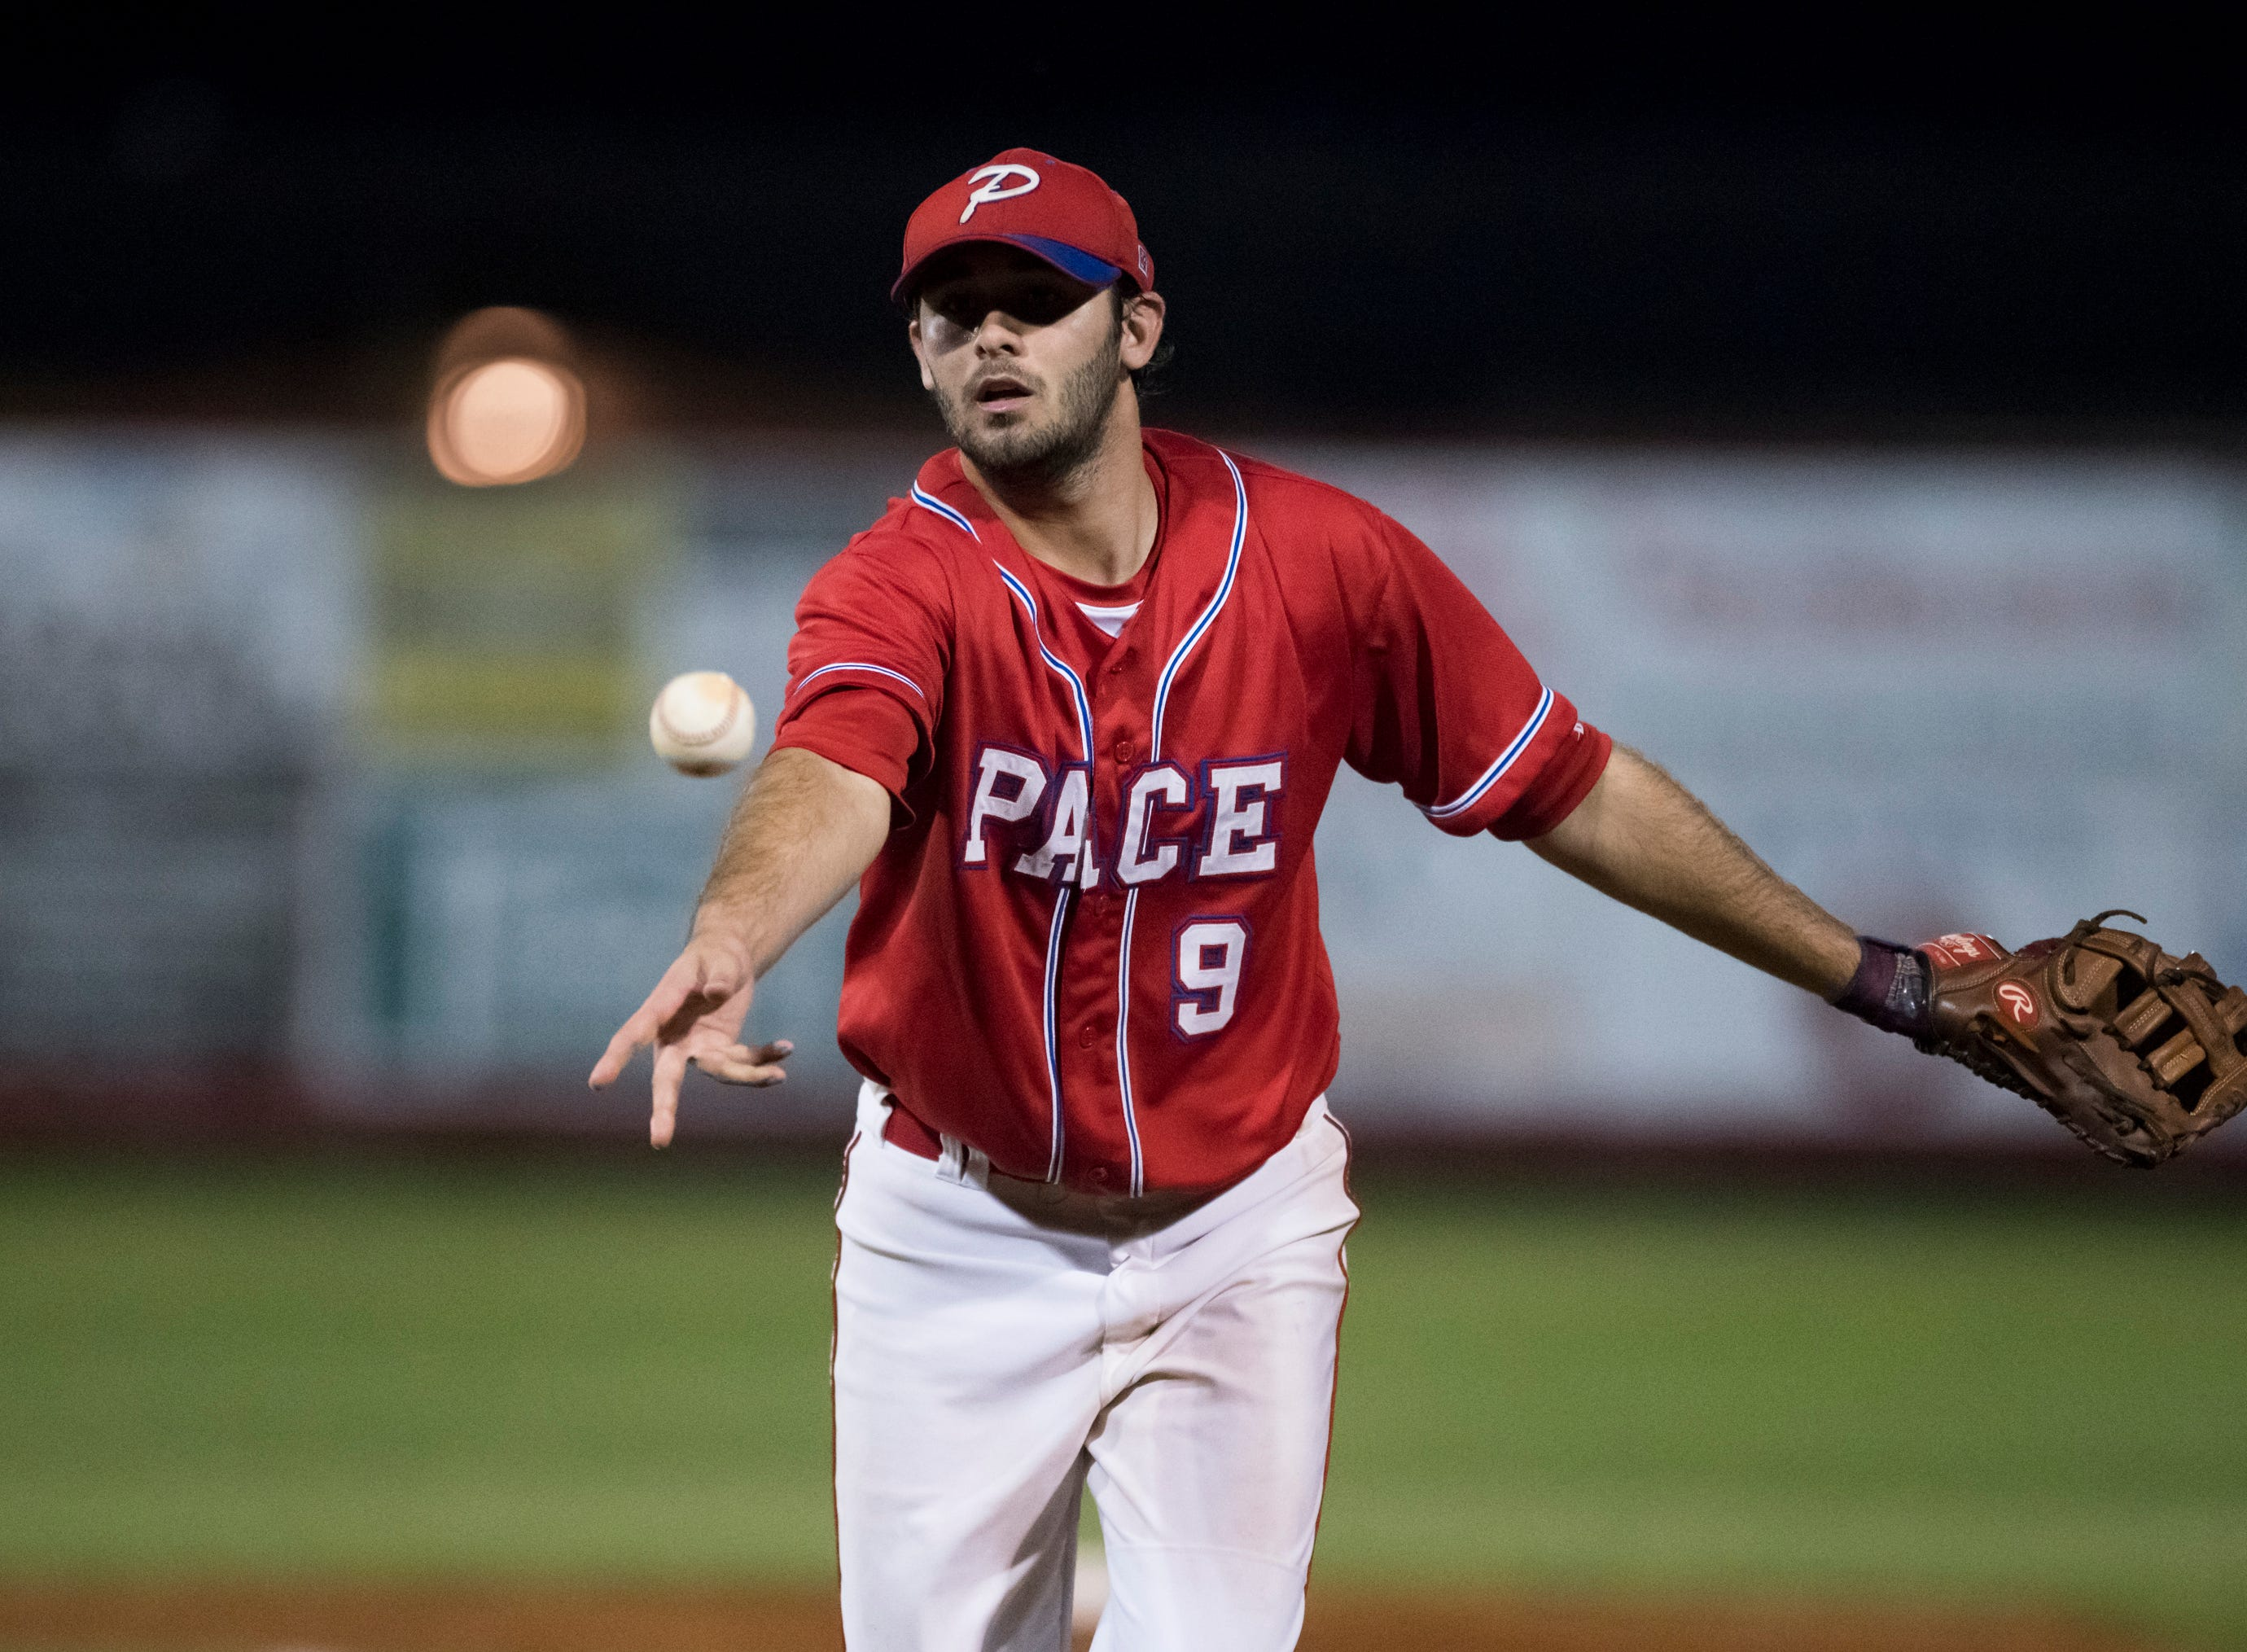 First baseman Dalton Dean (9) tosses to first for an out during the Tate vs Pace baseball game at Pace High School on Thursday, April 11, 2019.